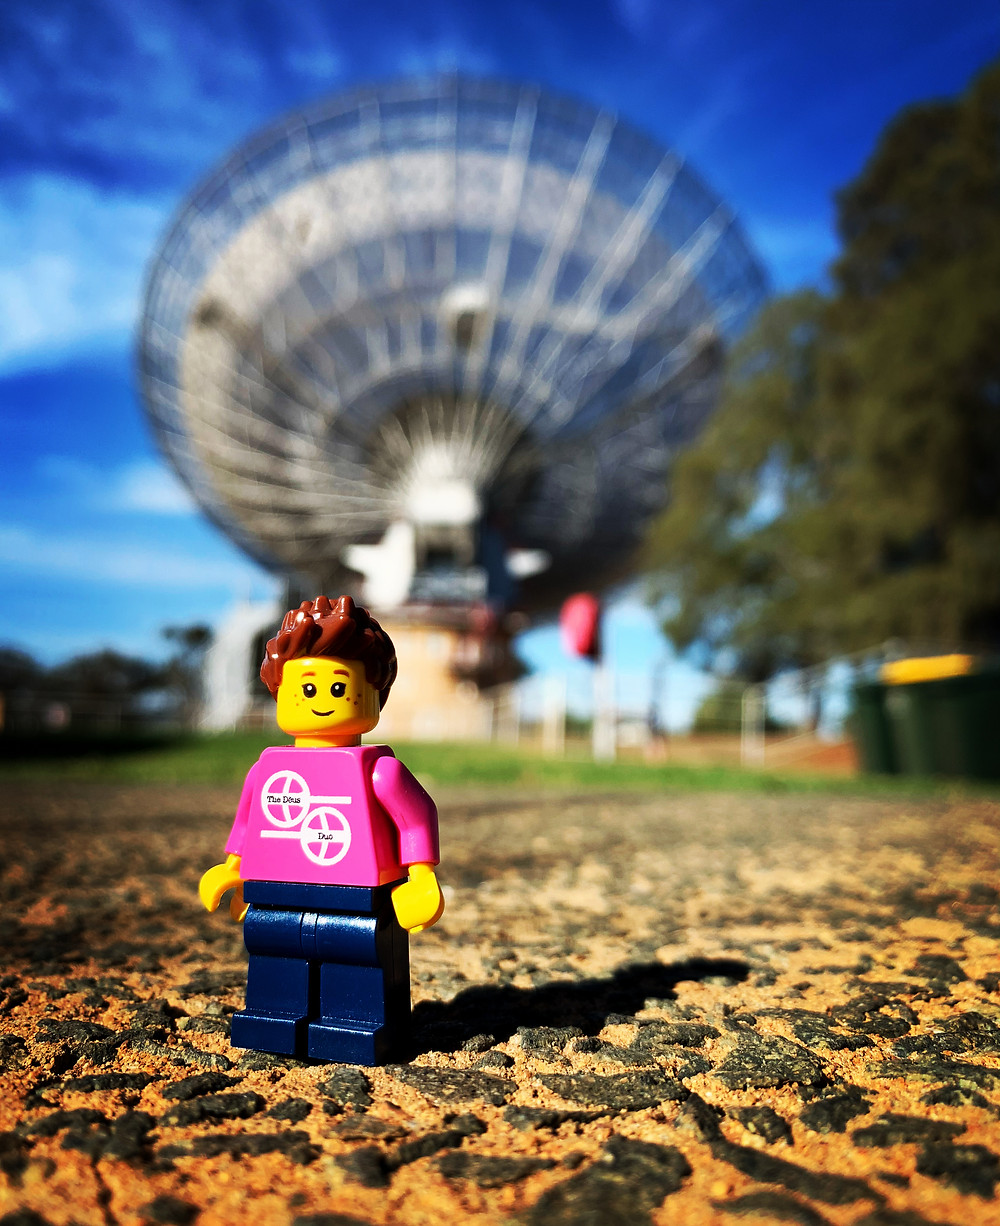 Sigfig and the dish